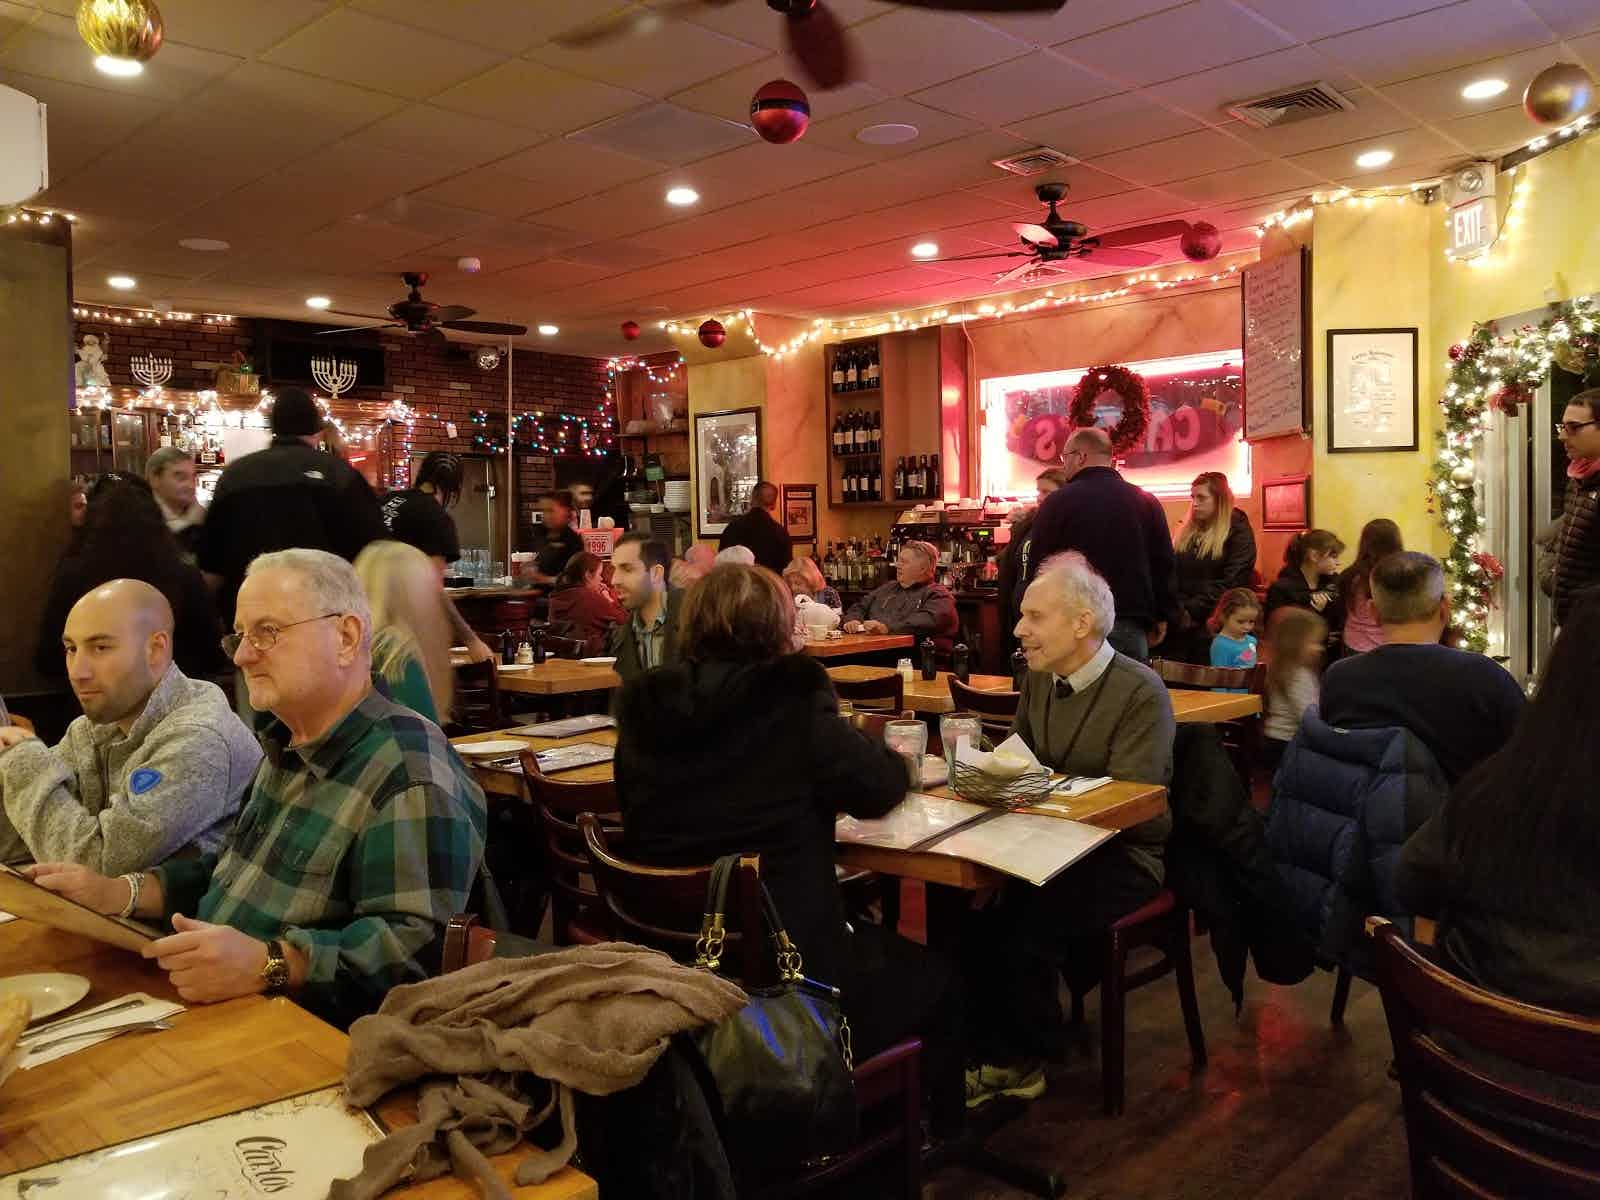 Carlo S Restaurant Yonkers Yonkers Restaurant Review